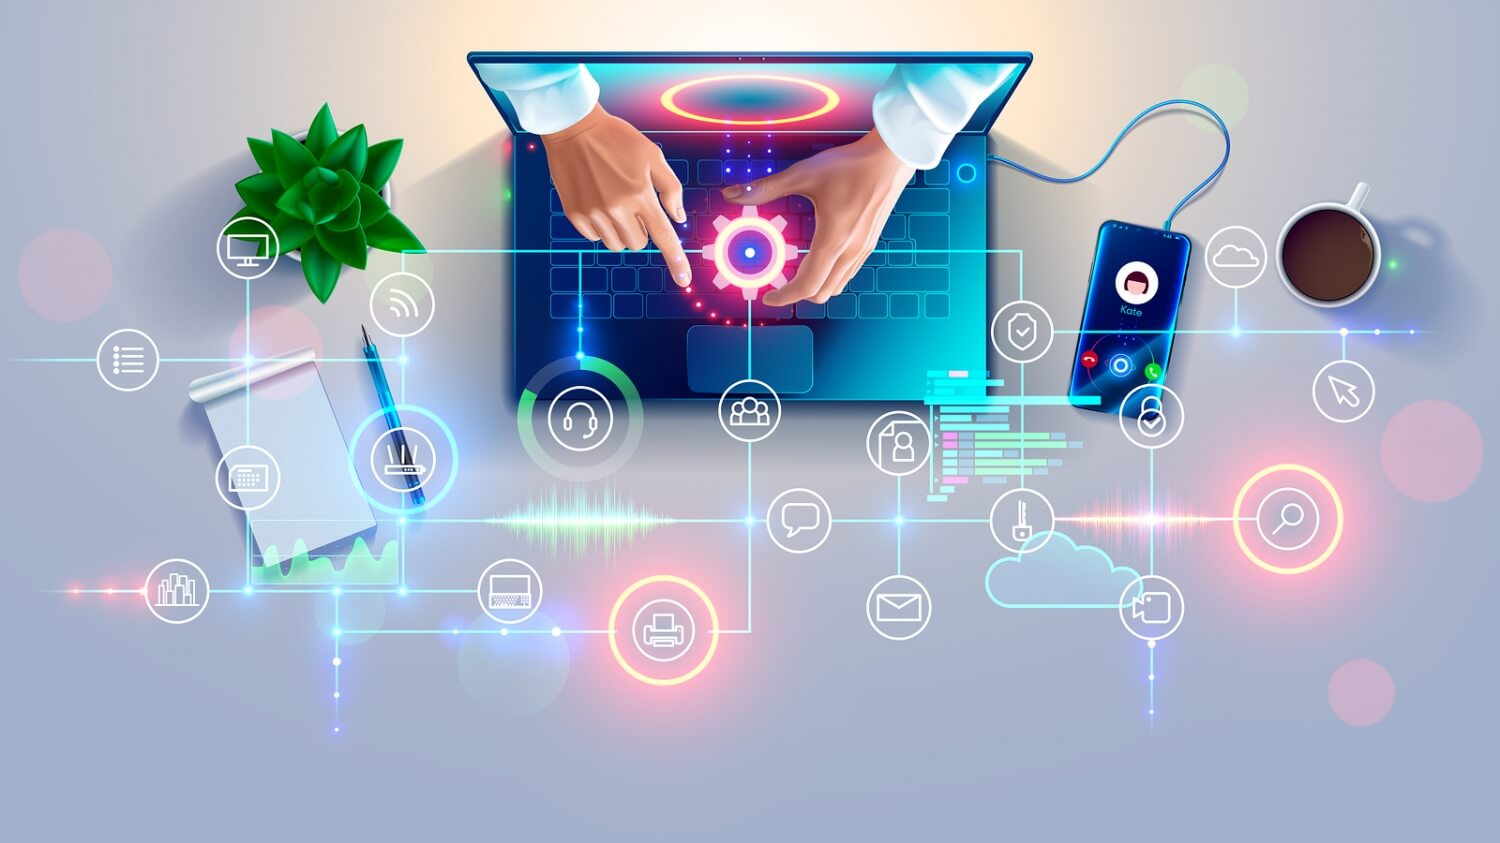 b2b ecommerce software solutions to build a profitable business